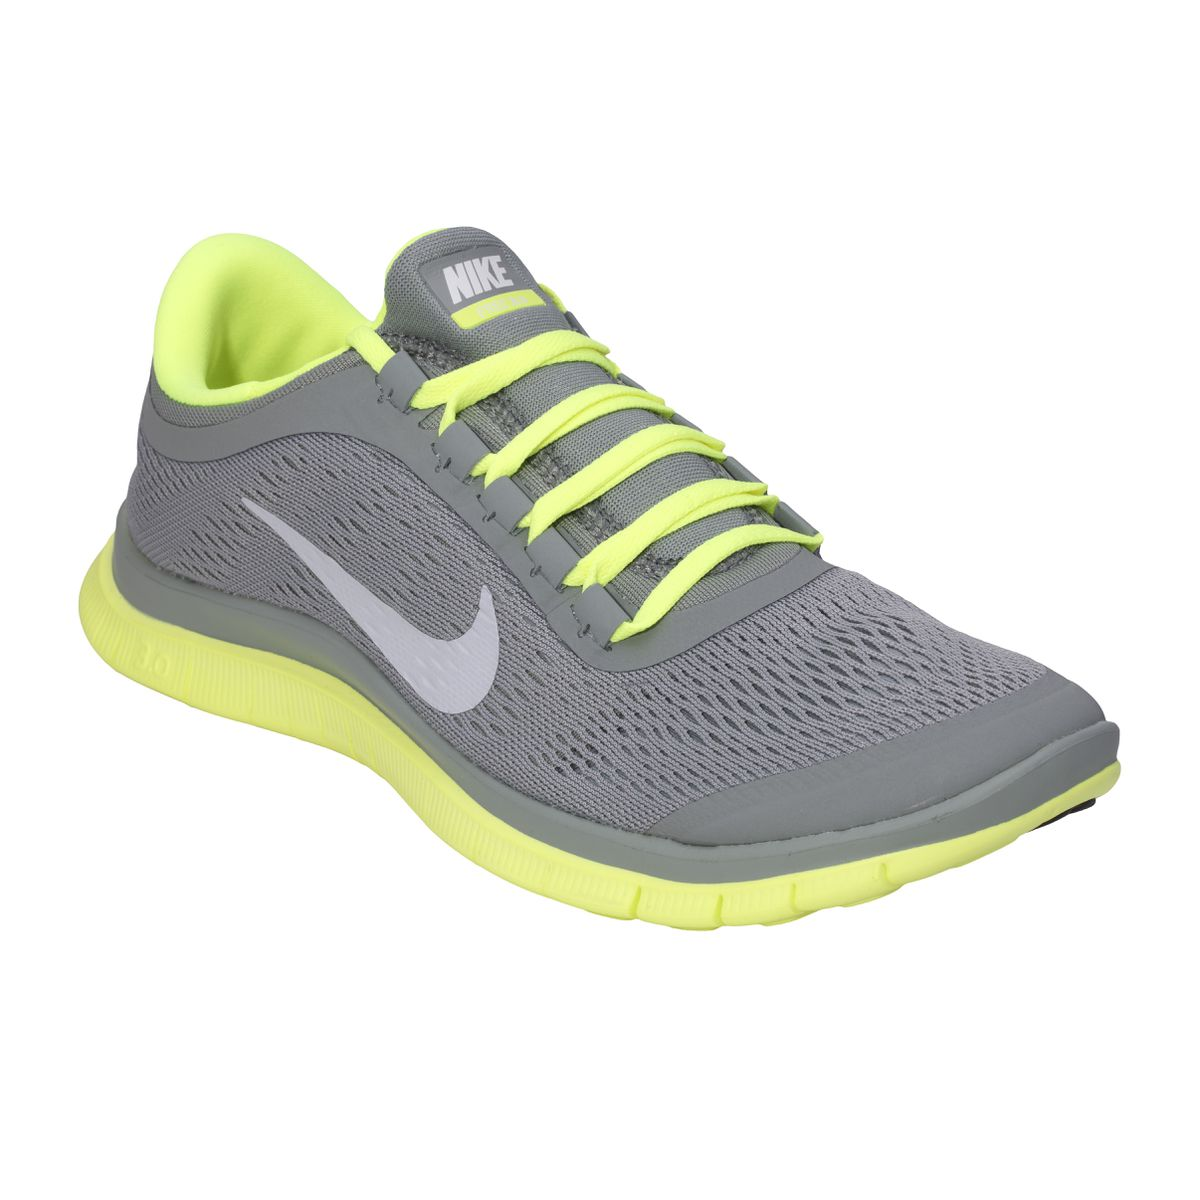 Where To Buy Nike Running Shoes In South Africa 22